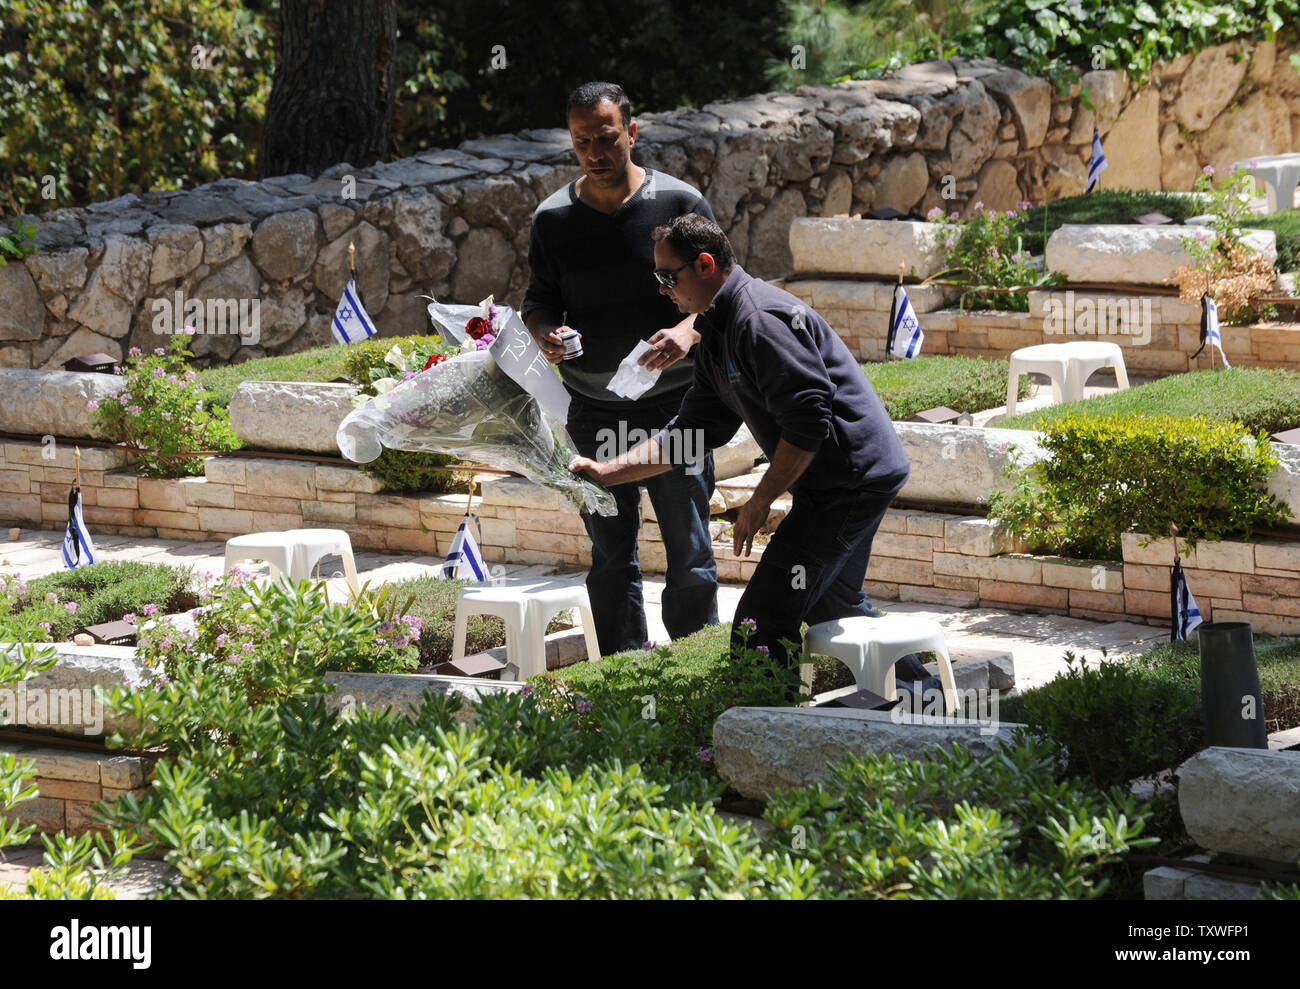 An Israeli places flowers on the grave of a fallen soldier for Remembrance Day at the Mt. Herzl Military Cemetery in Jerusalem, Israel, April 14, 2013. Israel's Remembrance Day for fallen soldiers begins at sunset with a one minute siren.  UPI/Debbie Hill Stock Photo